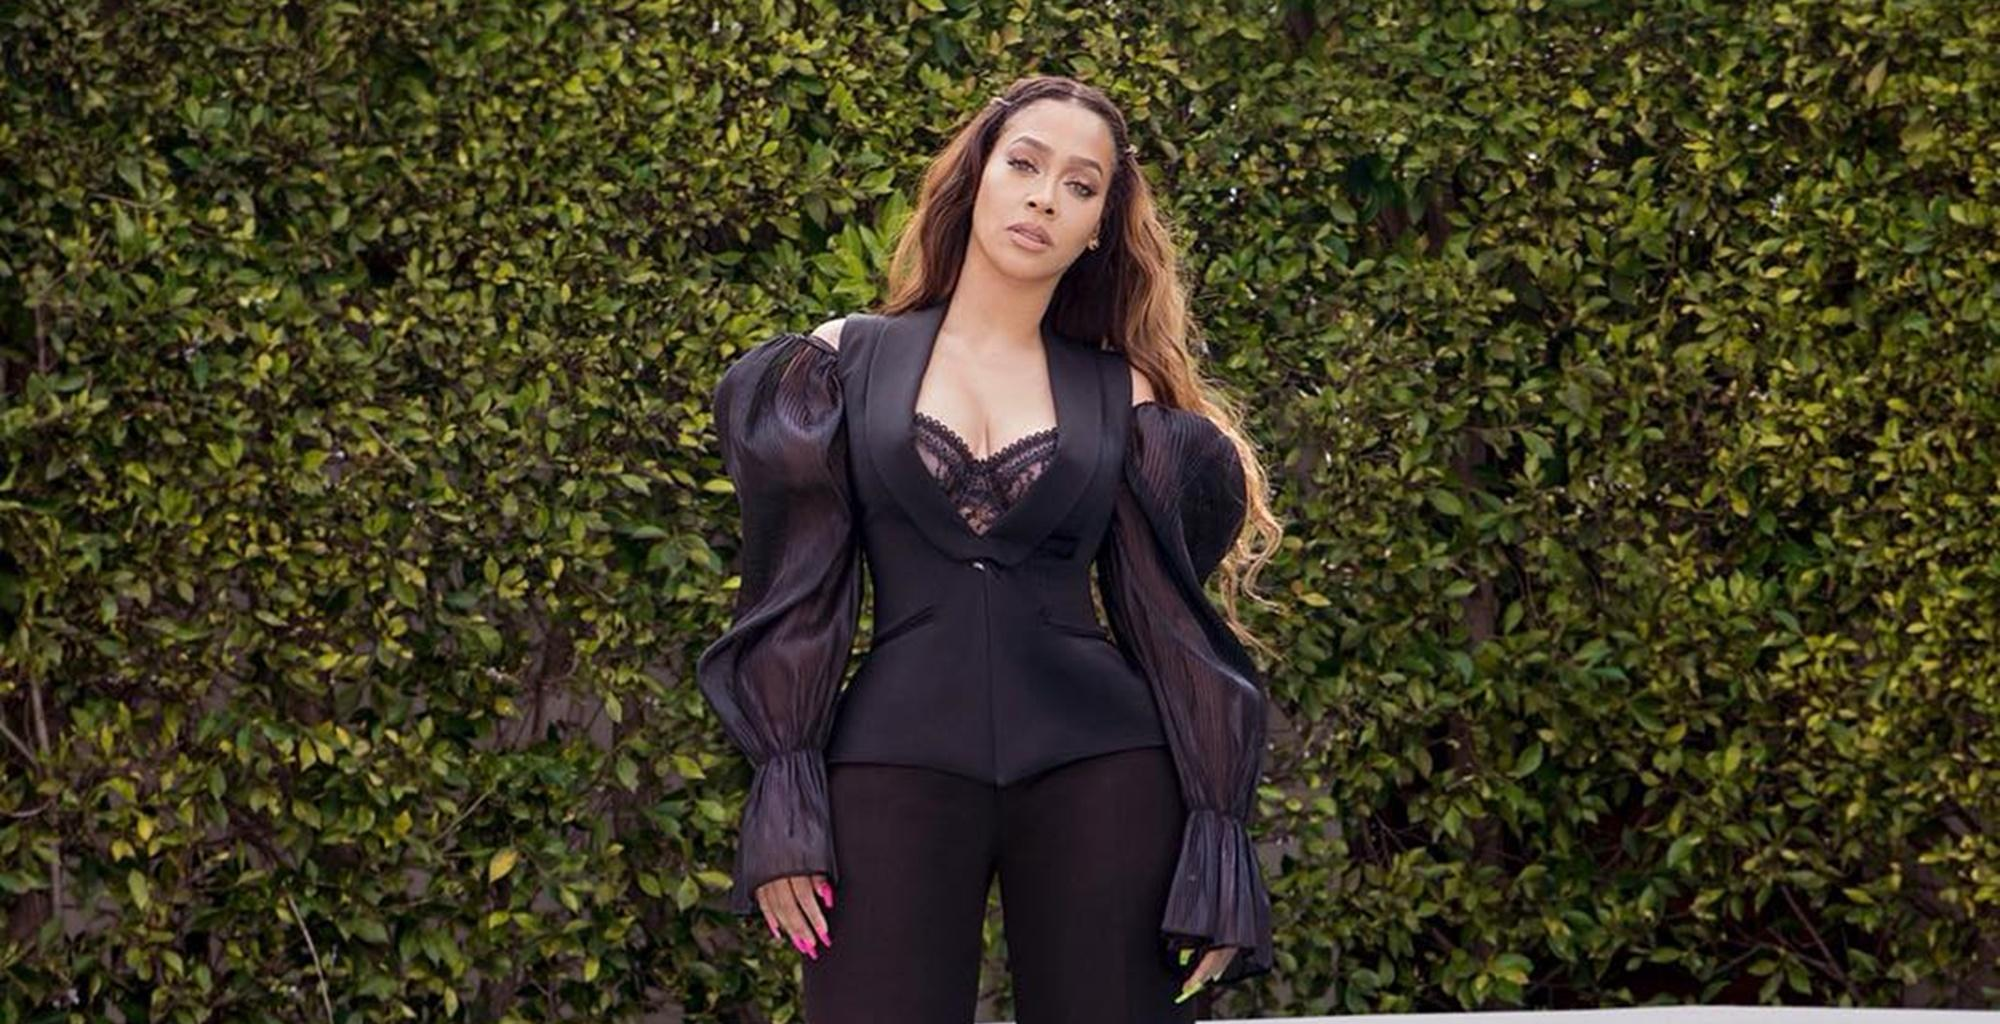 La La Anthony Reveals Why She Reconciled With Carmelo -- 'Power' Actress Gets Real About Her Feelings